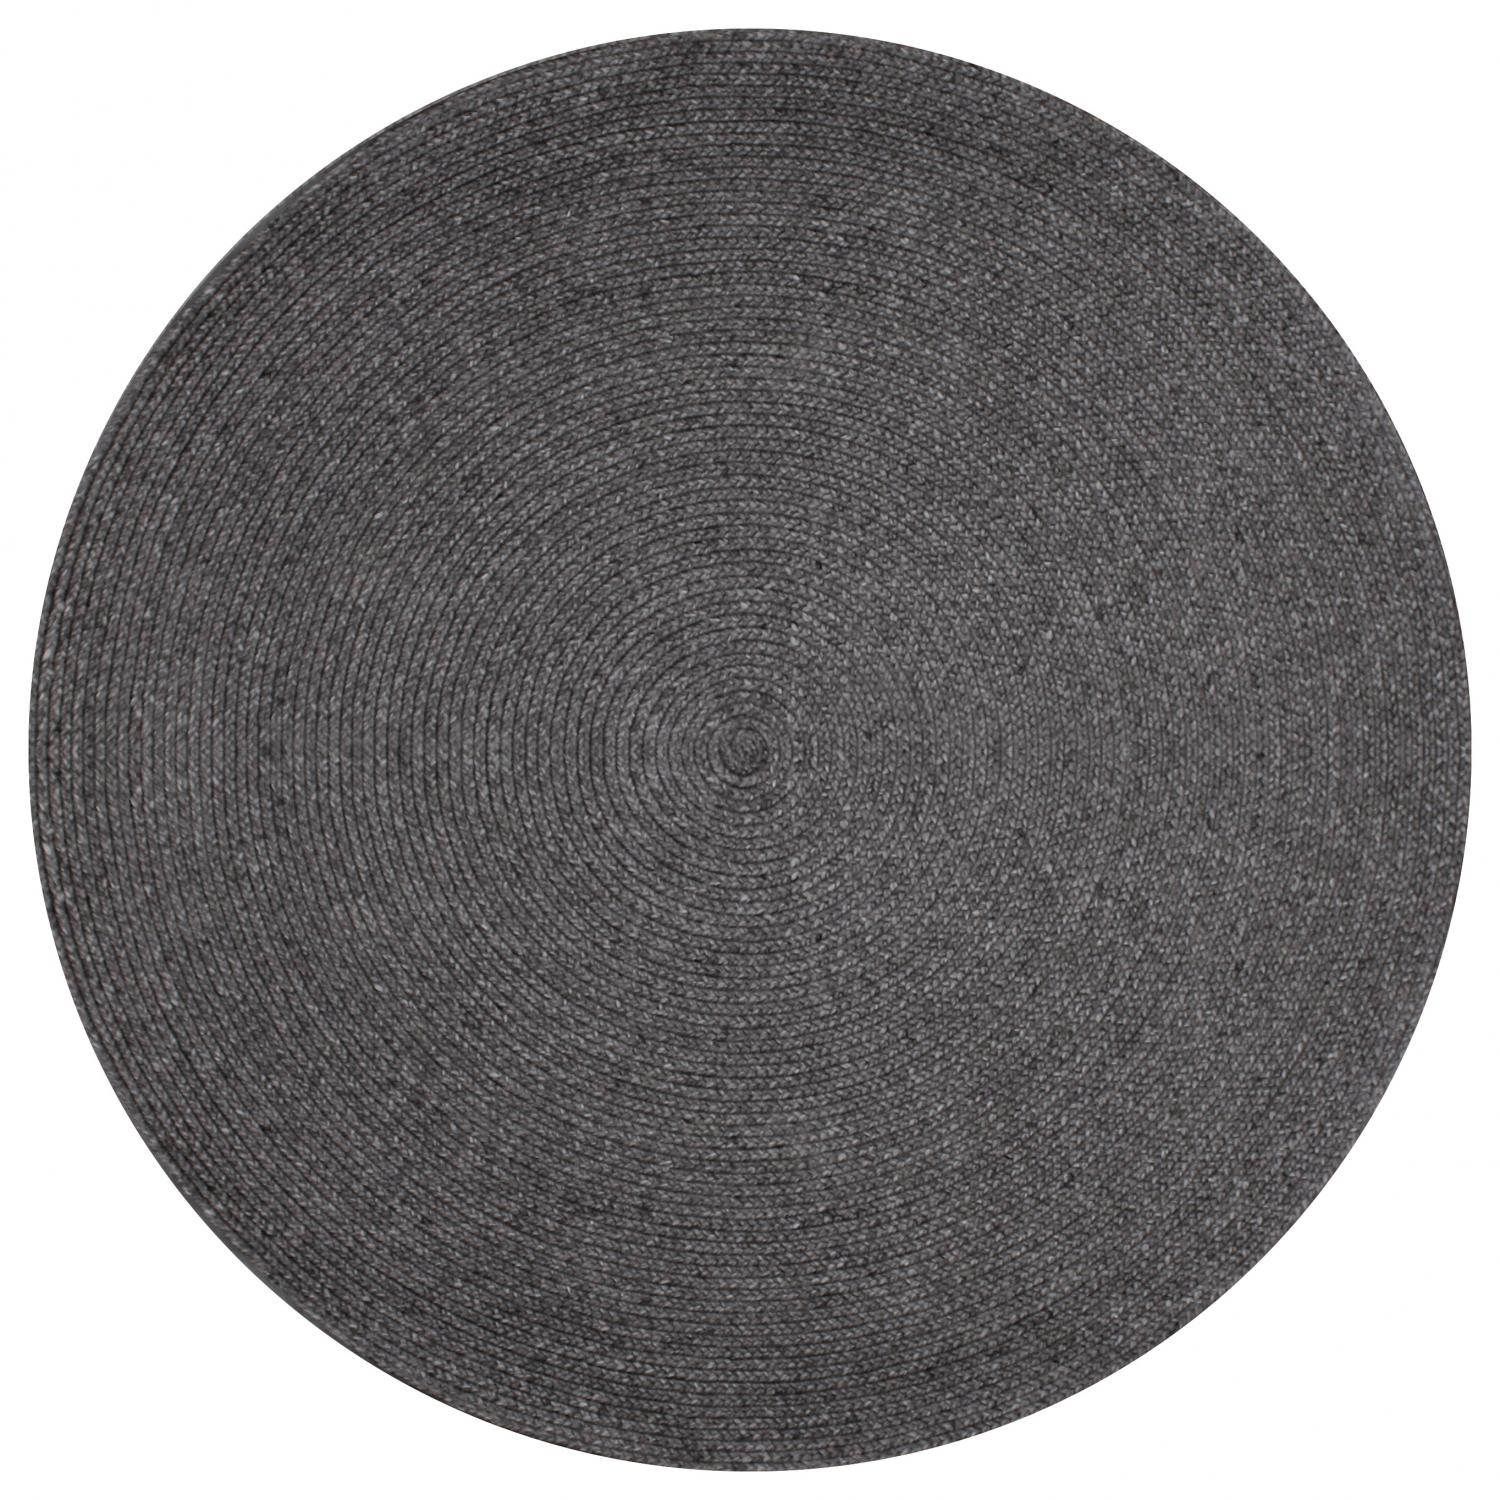 hand-woven-wool-and-art-silk-shaped-rugs-circle-perth-Stans-Charcoal